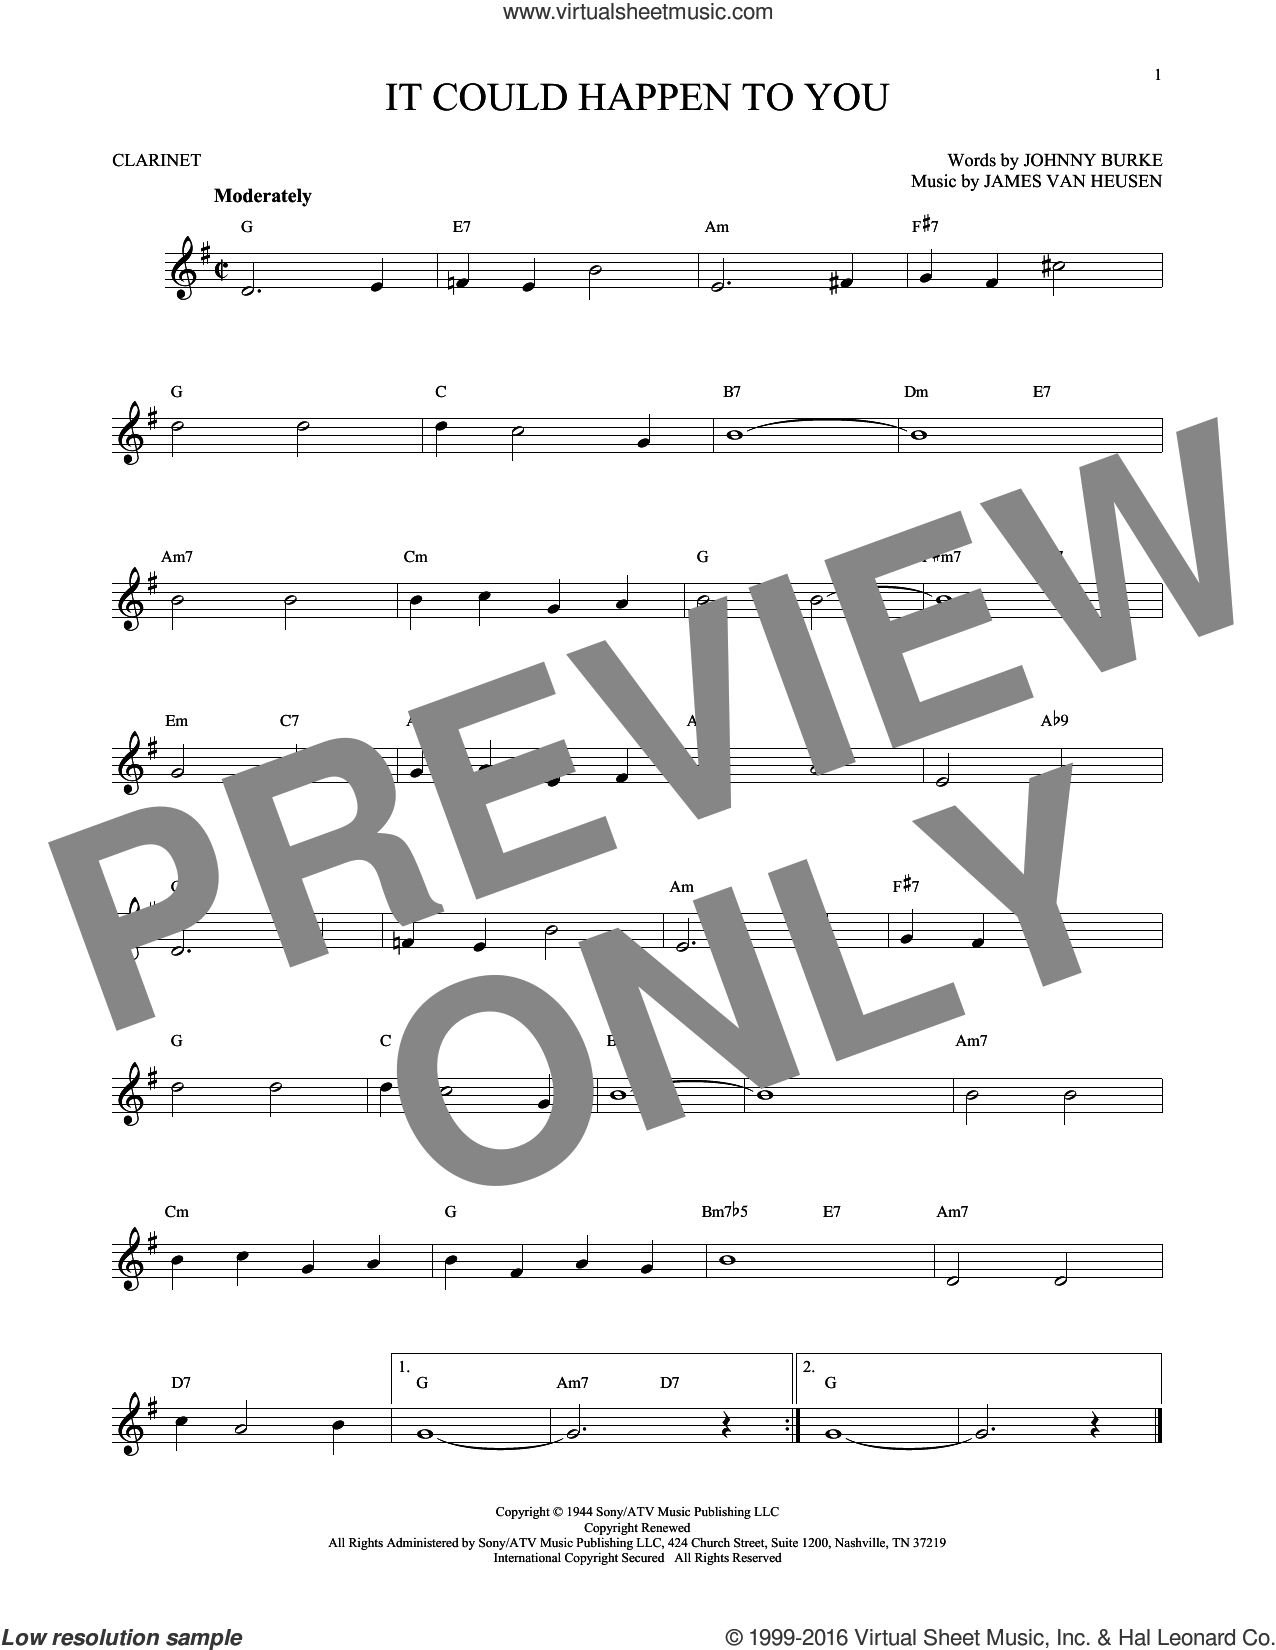 It Could Happen To You sheet music for clarinet solo by Jimmy van Heusen, June Christy and John Burke, intermediate skill level